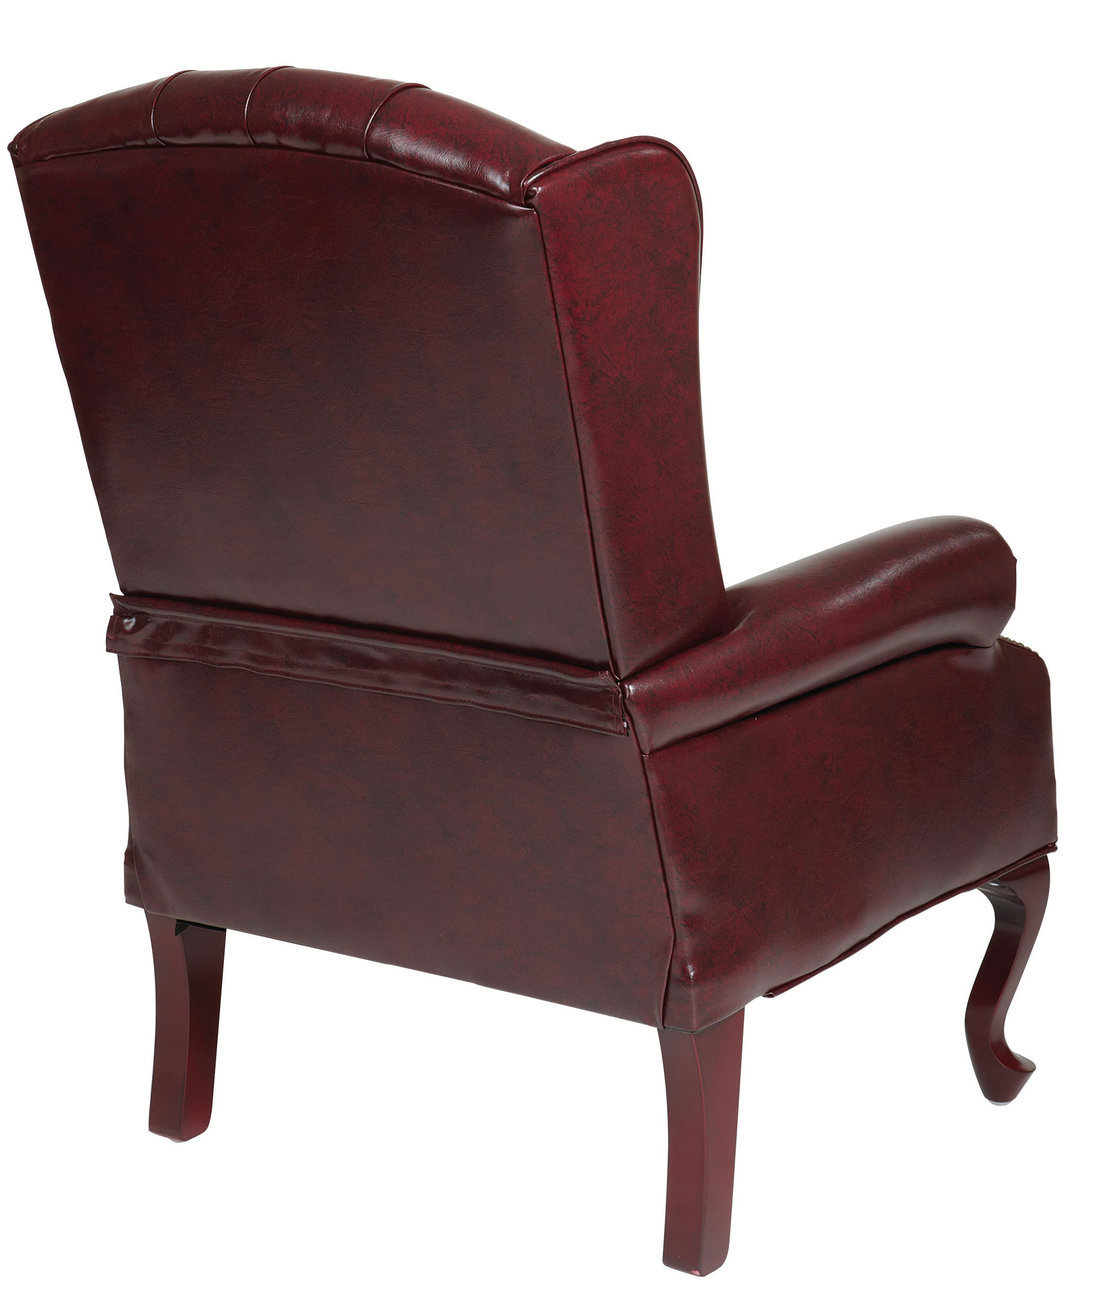 traditional wingback chair outdoor cushion covers australia oxblood vinyl tufted back queen anne wing lounge